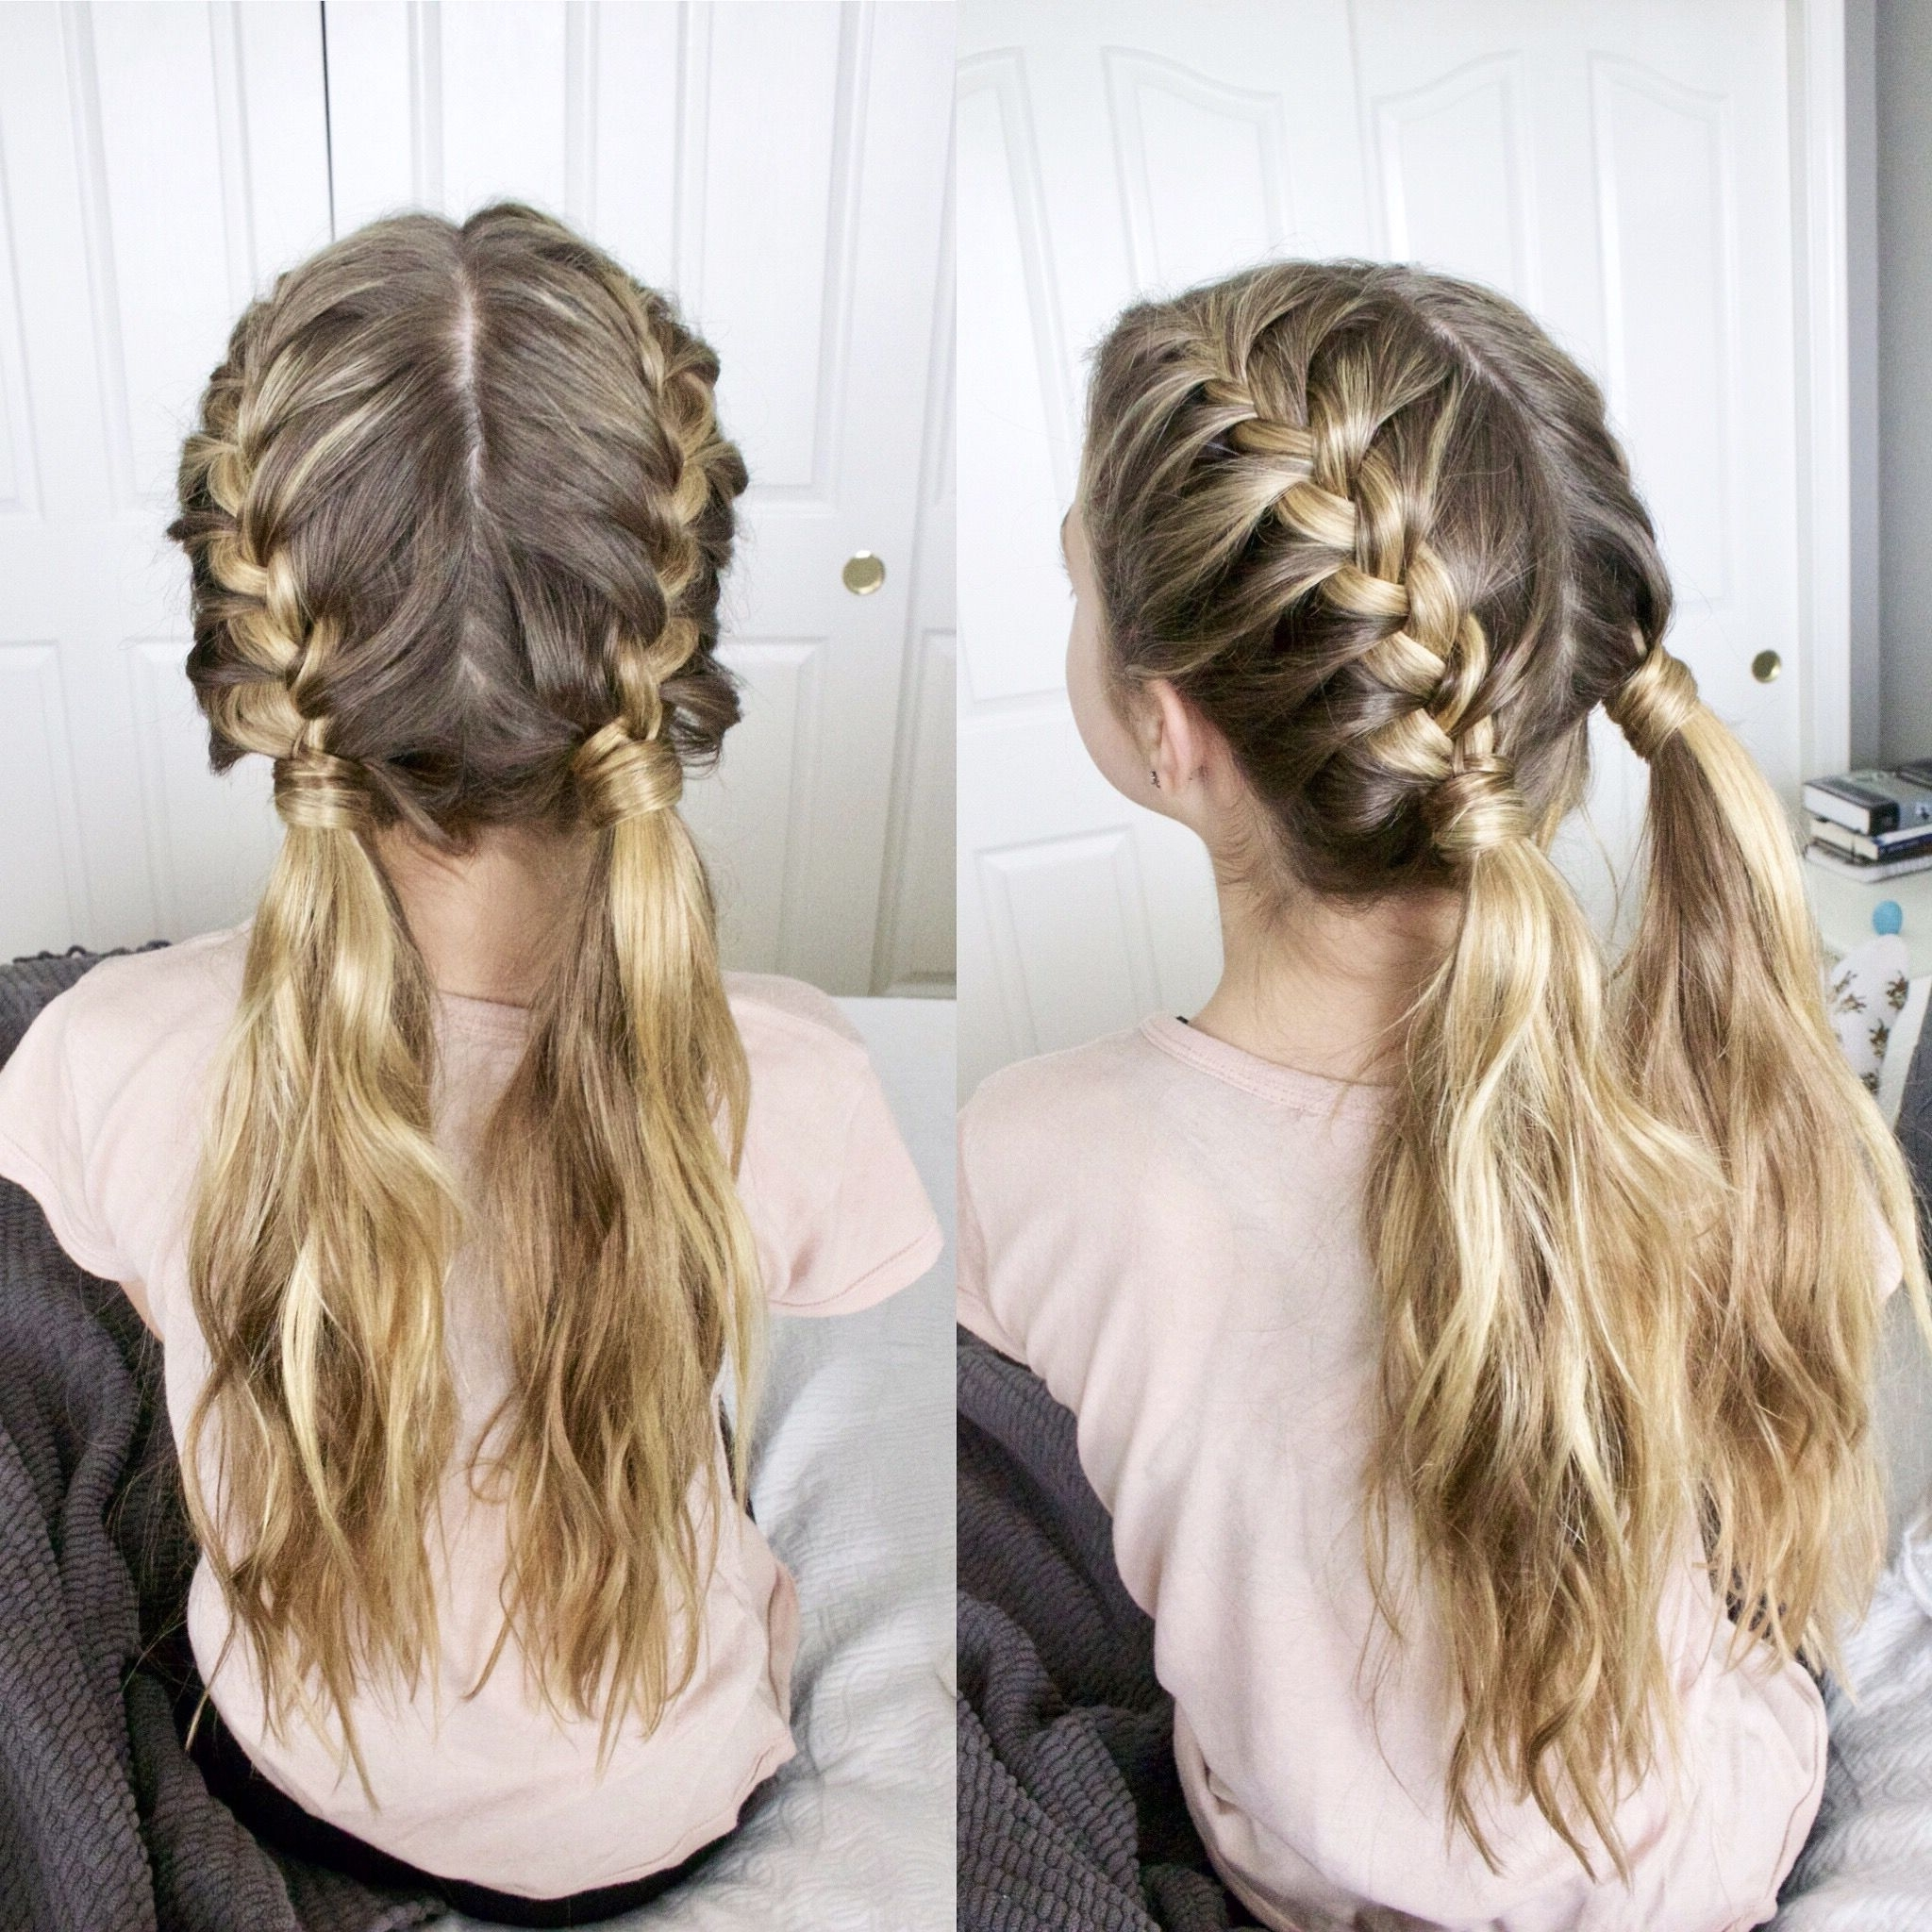 Hair Braidingash With 2018 Braided Millennial Pink Pony Hairstyles (View 7 of 20)